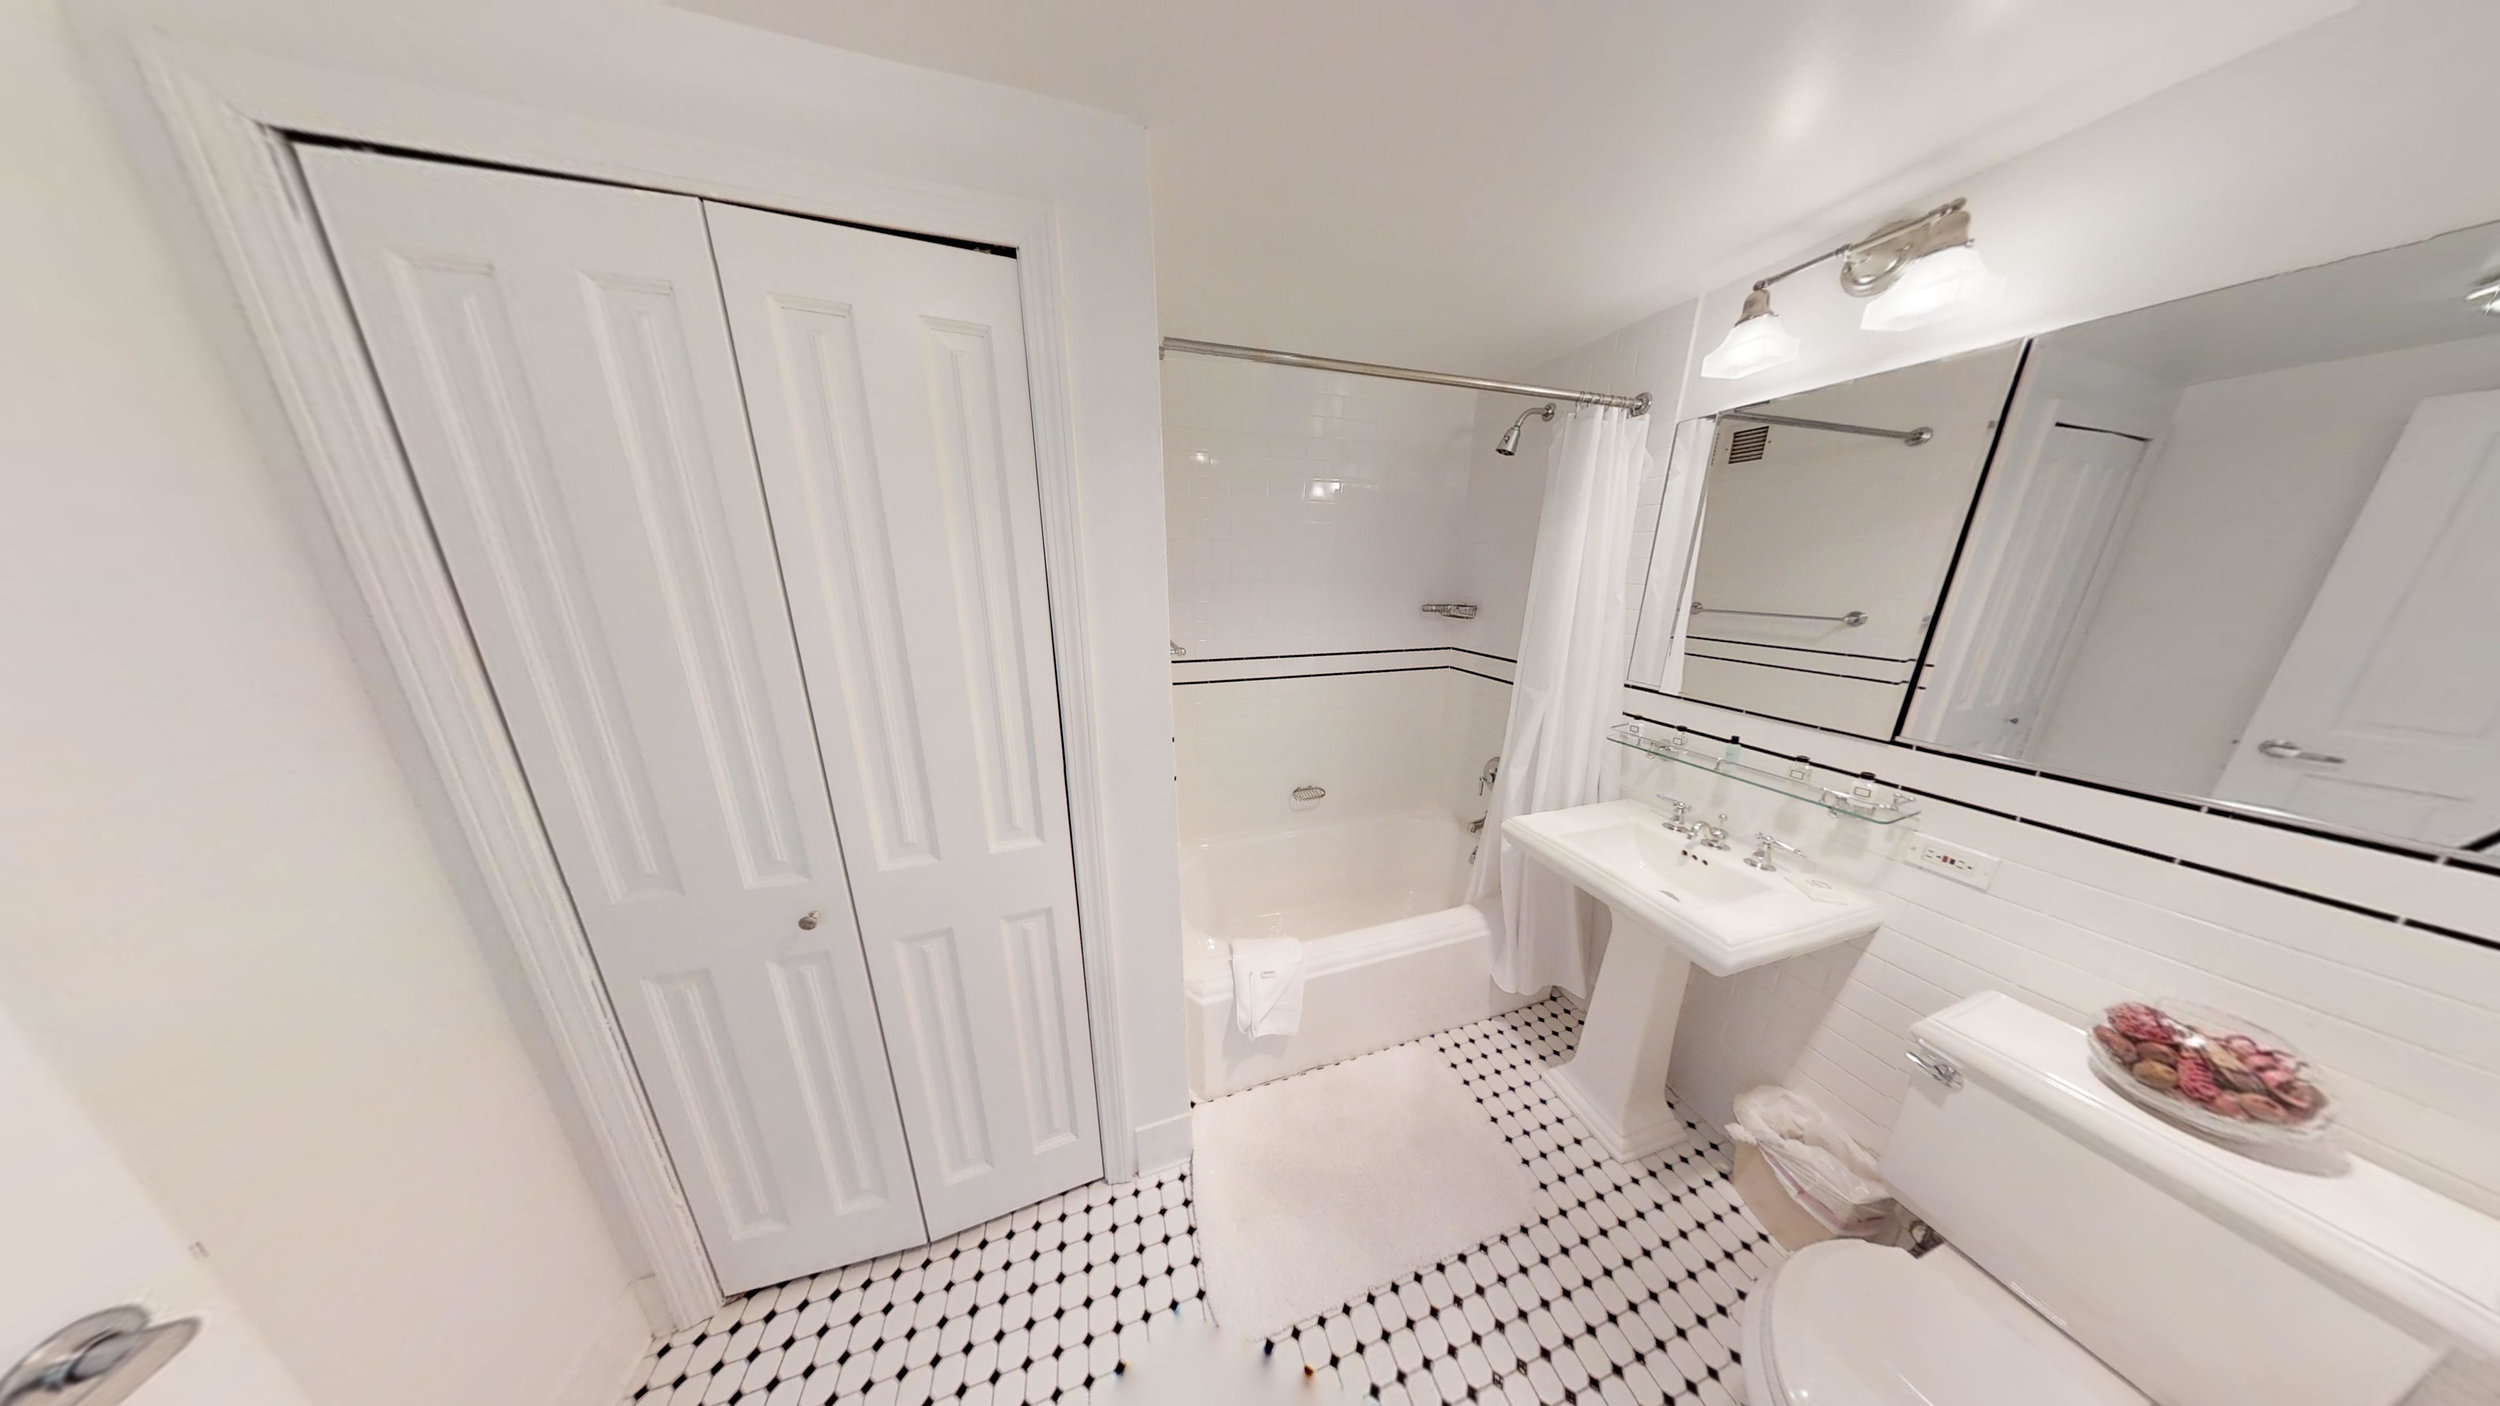 Ivy Tower Bathroom 1.jpg